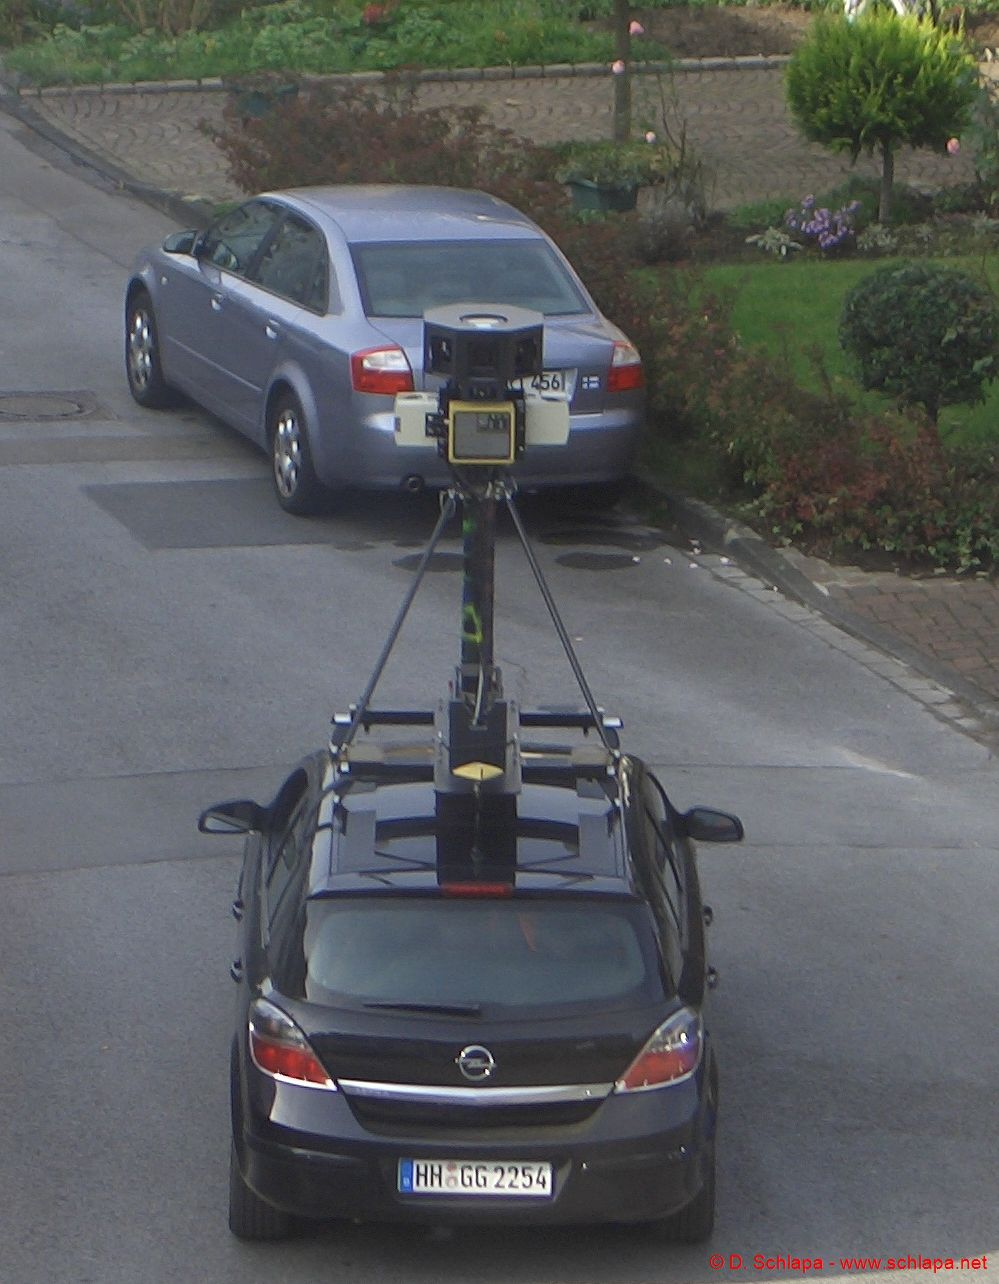 Das Goole Street View Auto in Hilden